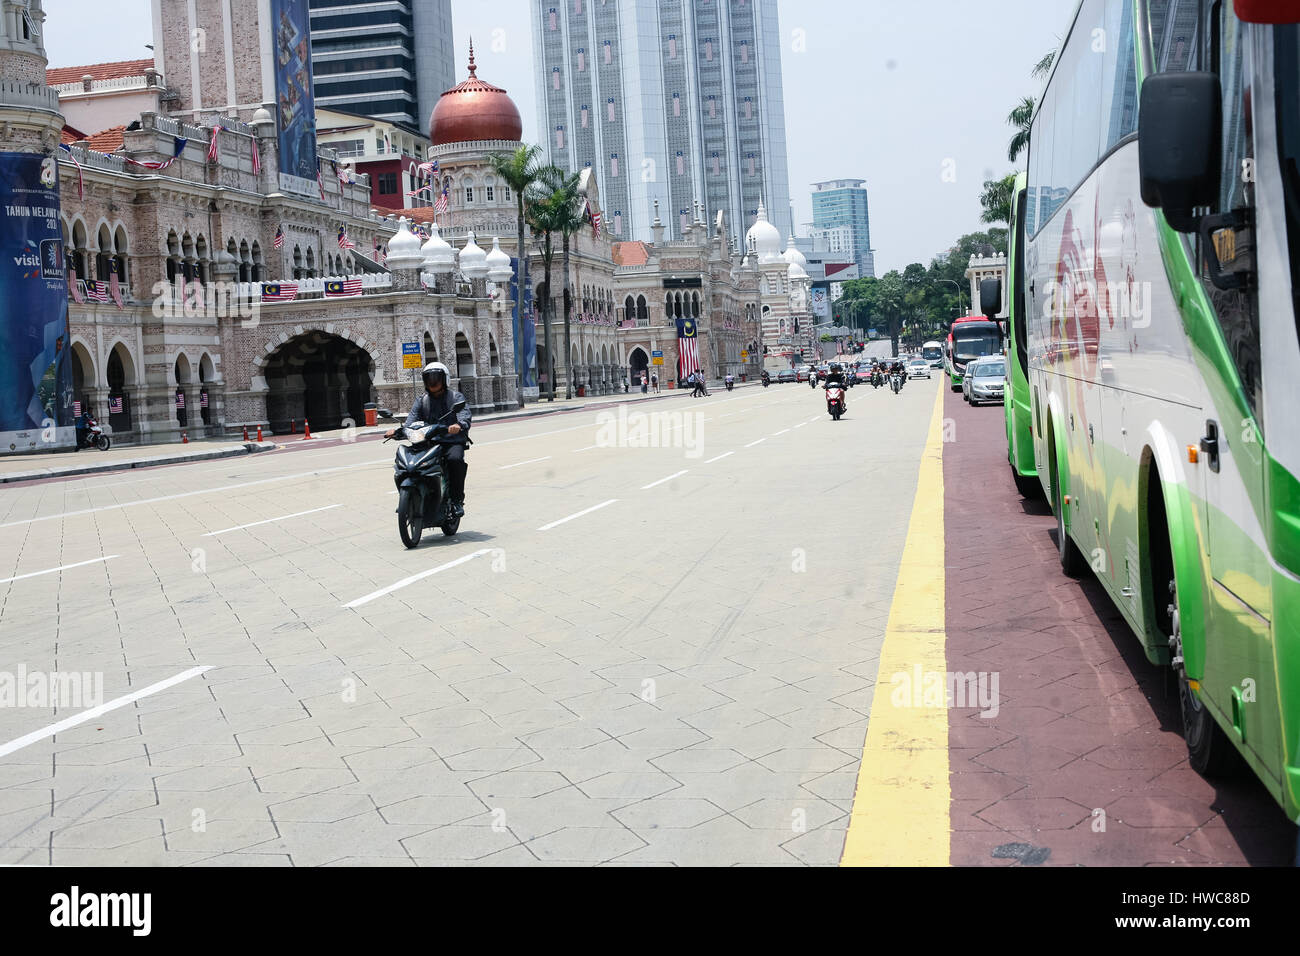 Masjid Jamek Mosque in center of city. Cityscape - Stock Image